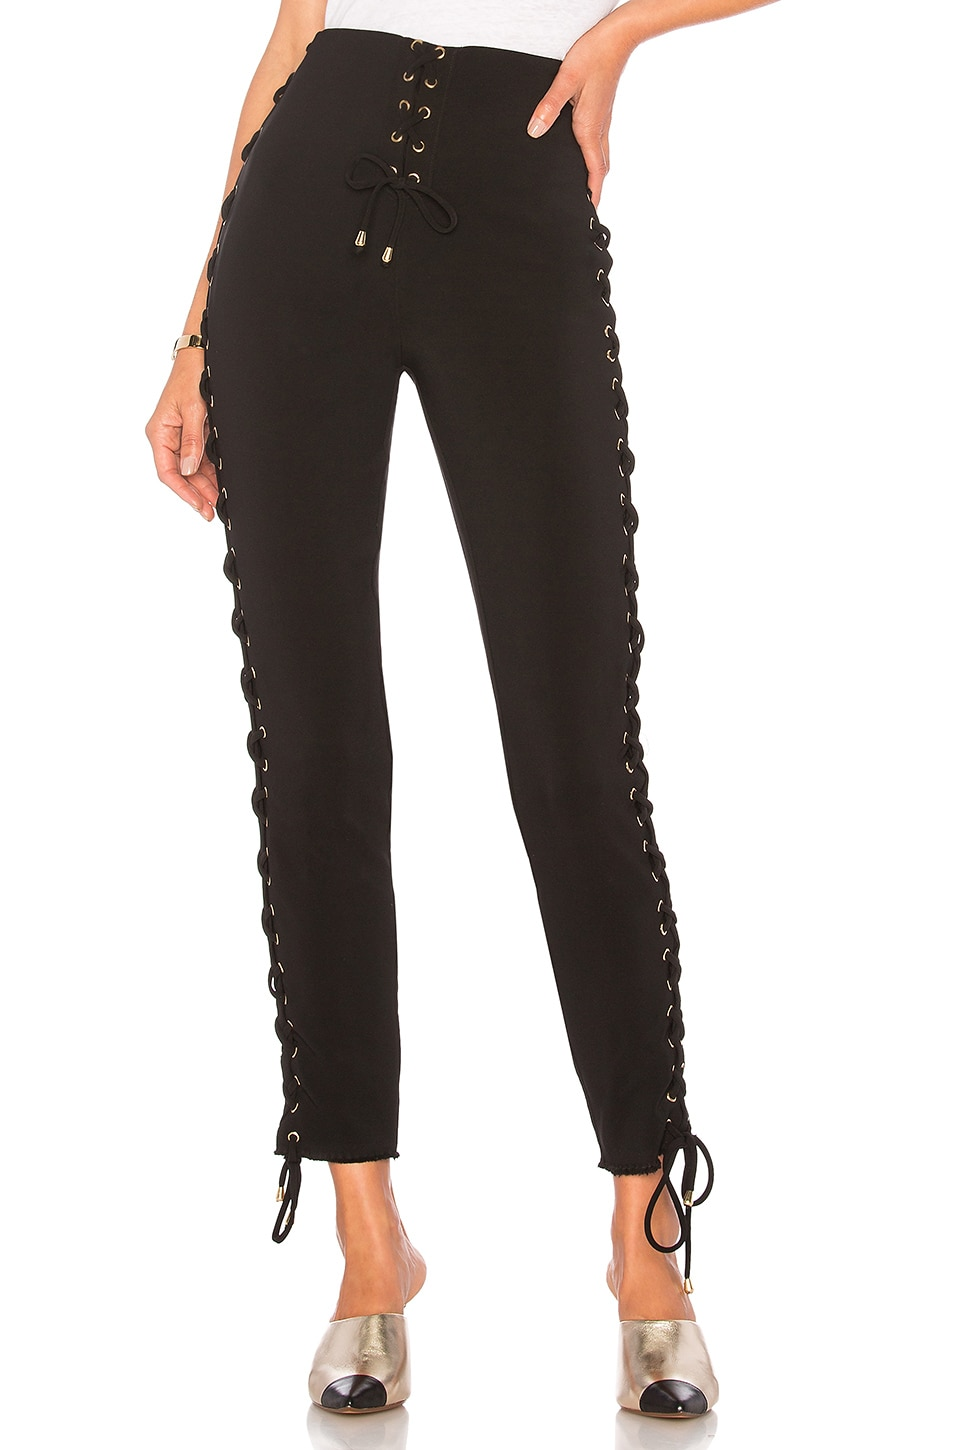 House of Harlow 1960 PANTALON TAILLE HAUTE STEVIE